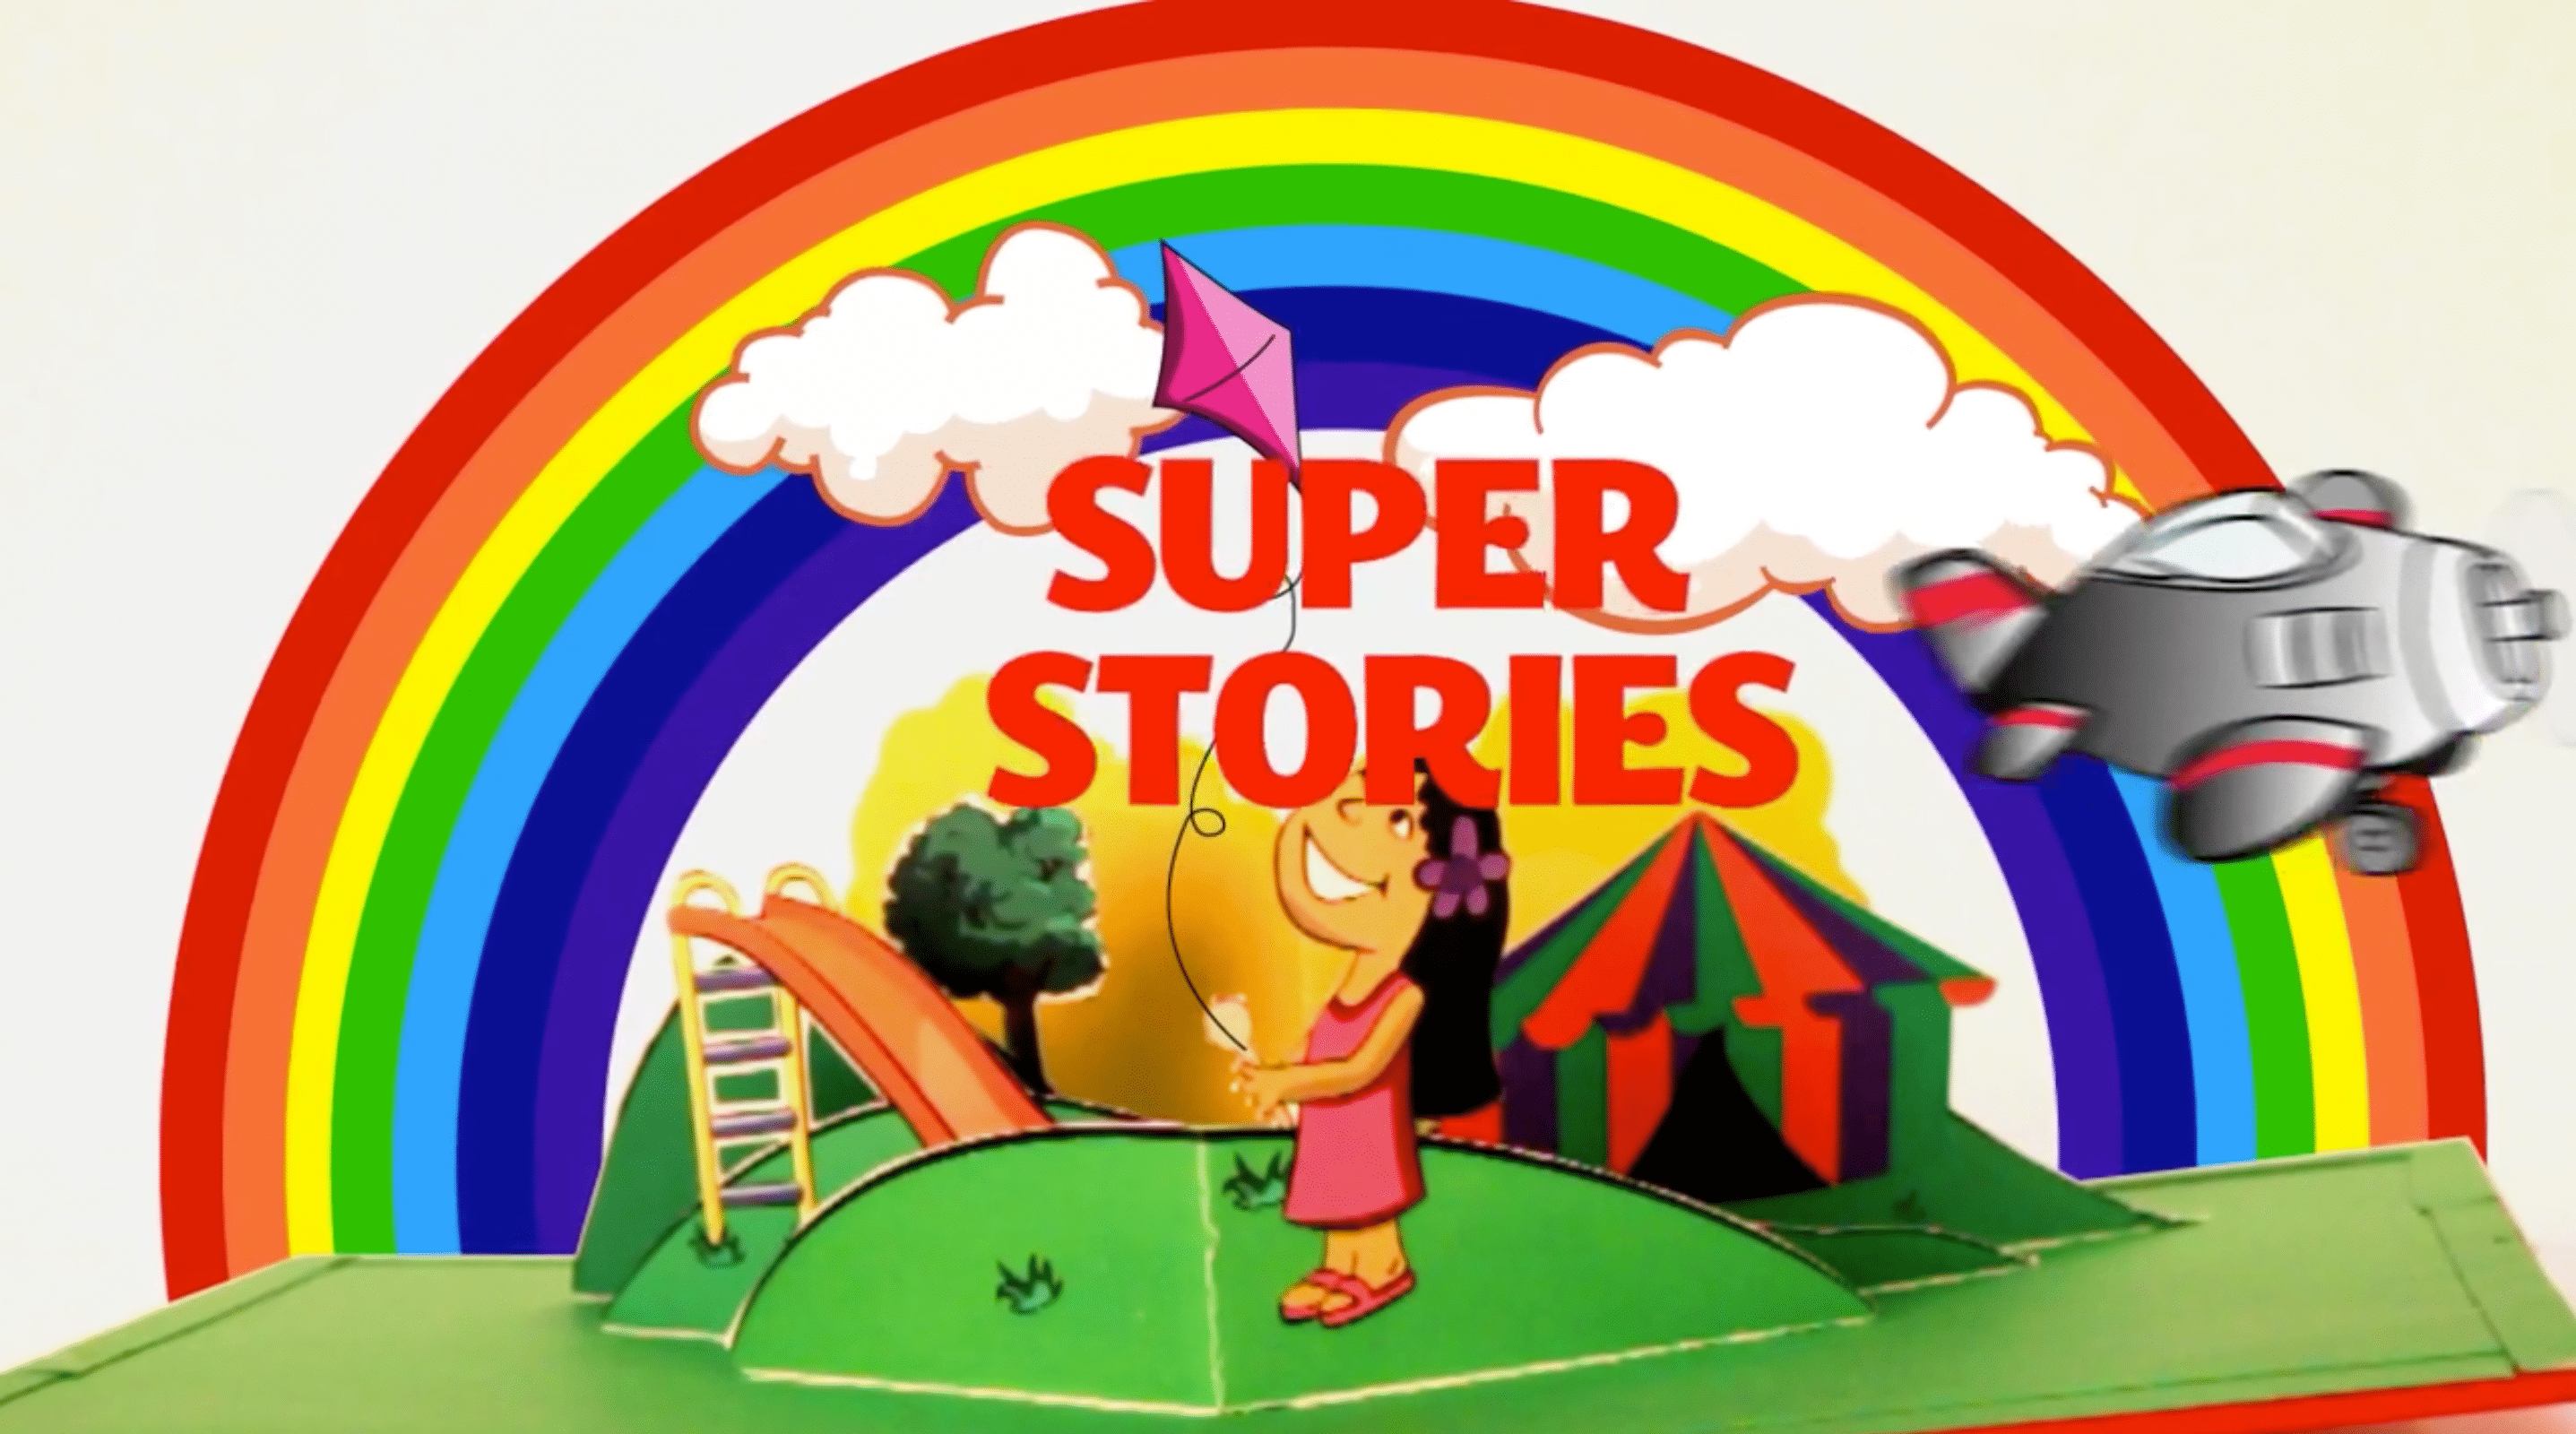 Super Stories - Pop-up book comes to life!